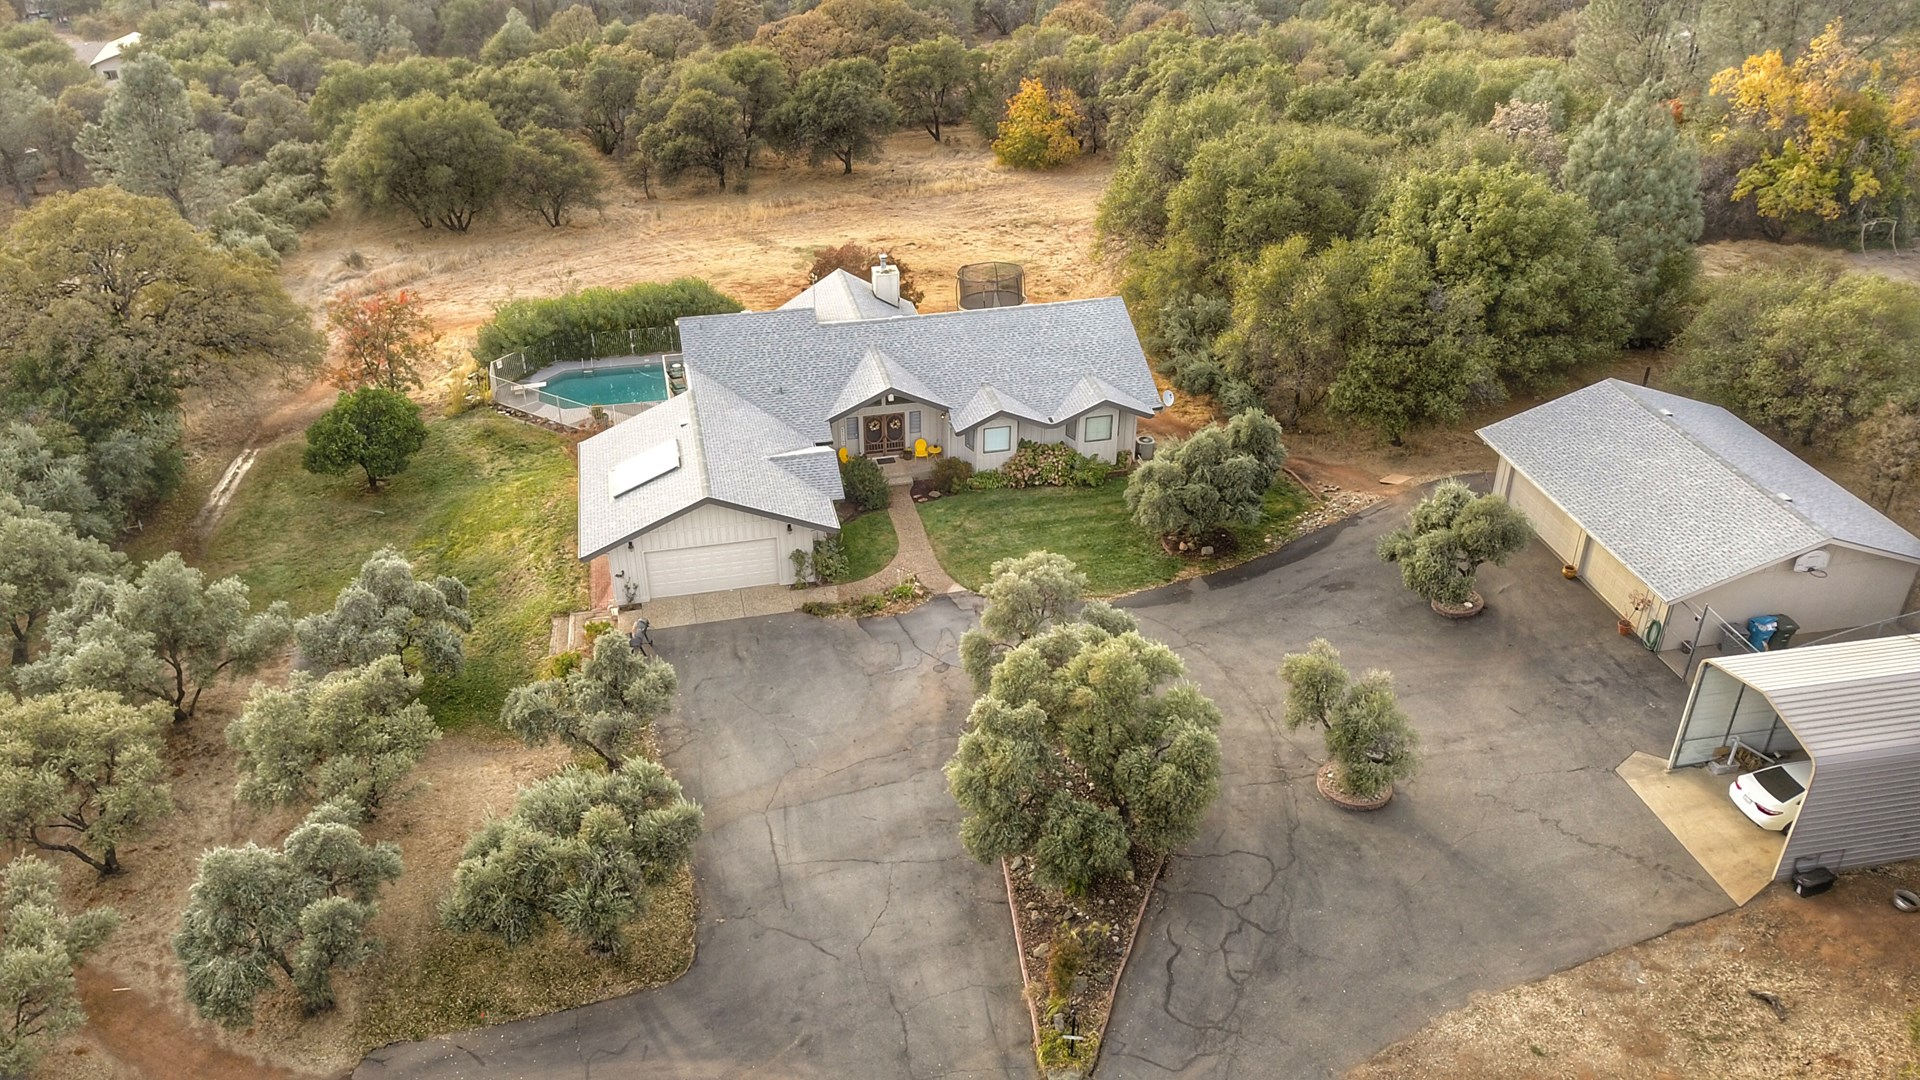 Luxury Lake Oroville Foothills Country Home For Sale